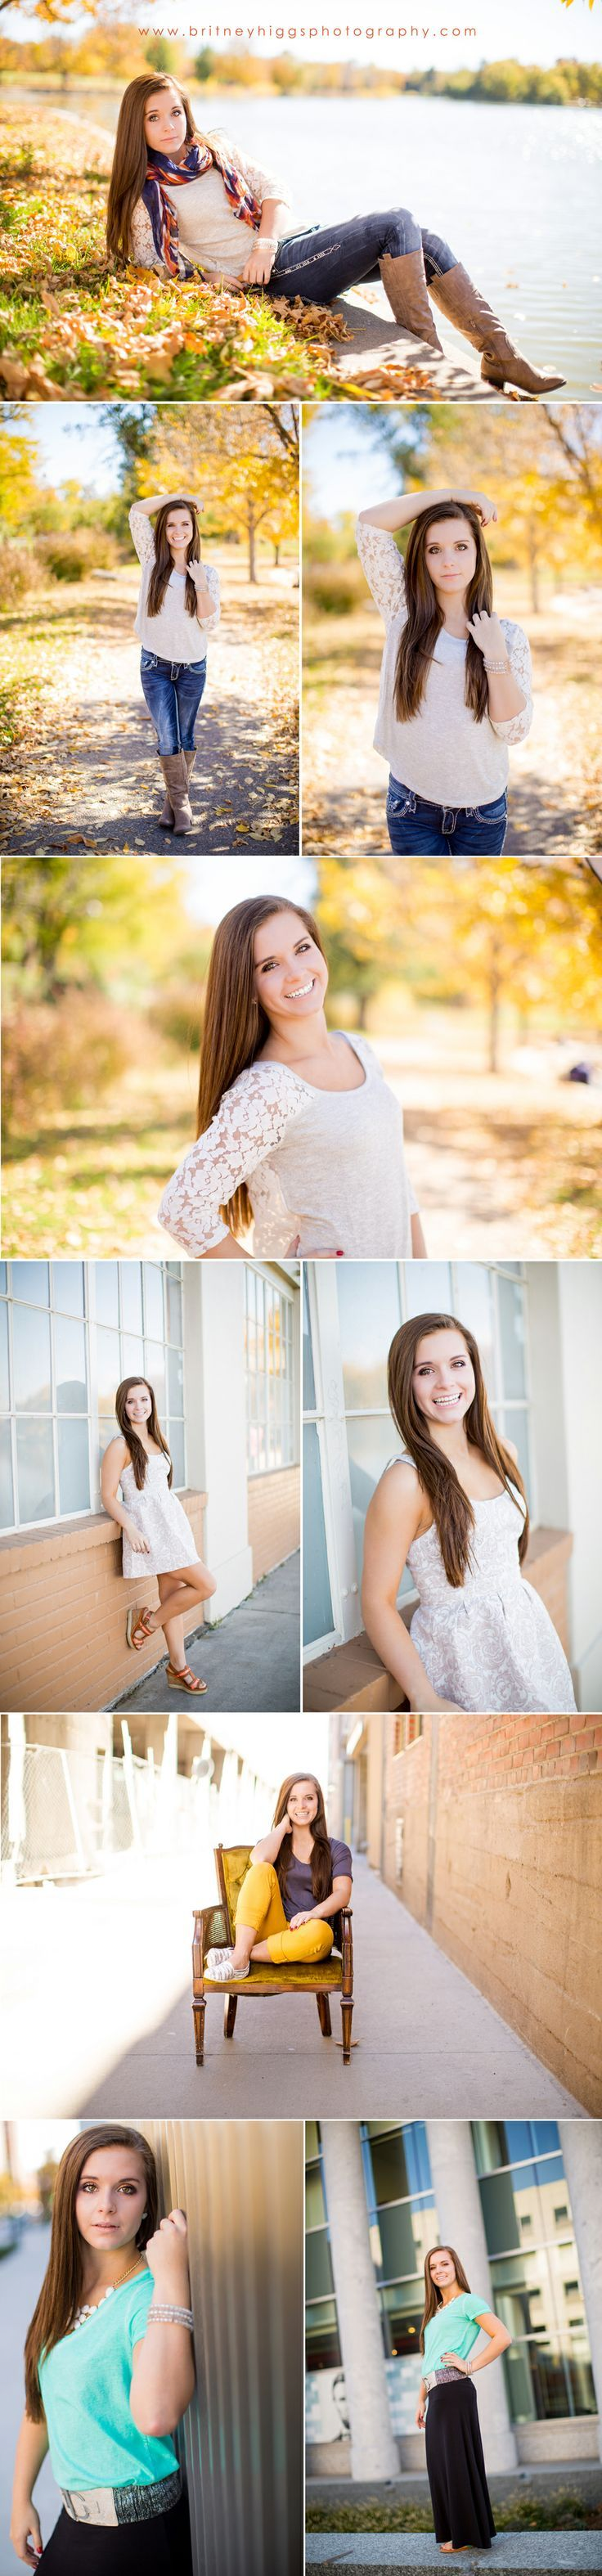 Love the idea of Fall senior pictures!  That piece of hair on the second set drives me nuts, though.  Easy Photoshop fix.